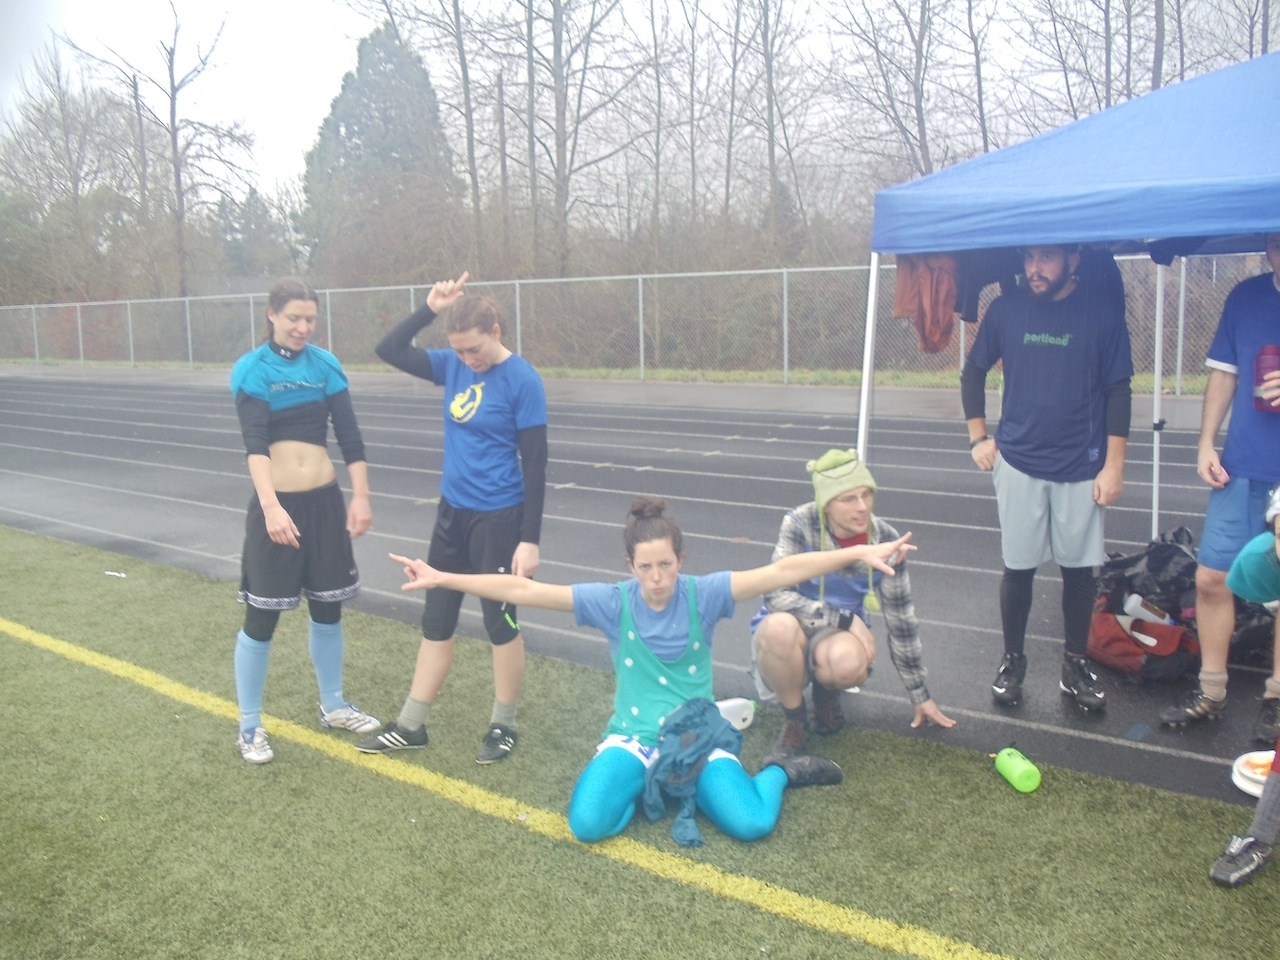 i haven't been able to play arm-based sports like ultimate frisbee for over a month now. and i was just learning it. in case i never go back, this photo is proof that i once played. or at least, this photo is proof that i once wore iridescent blue leggings and sat on turf in the rain.